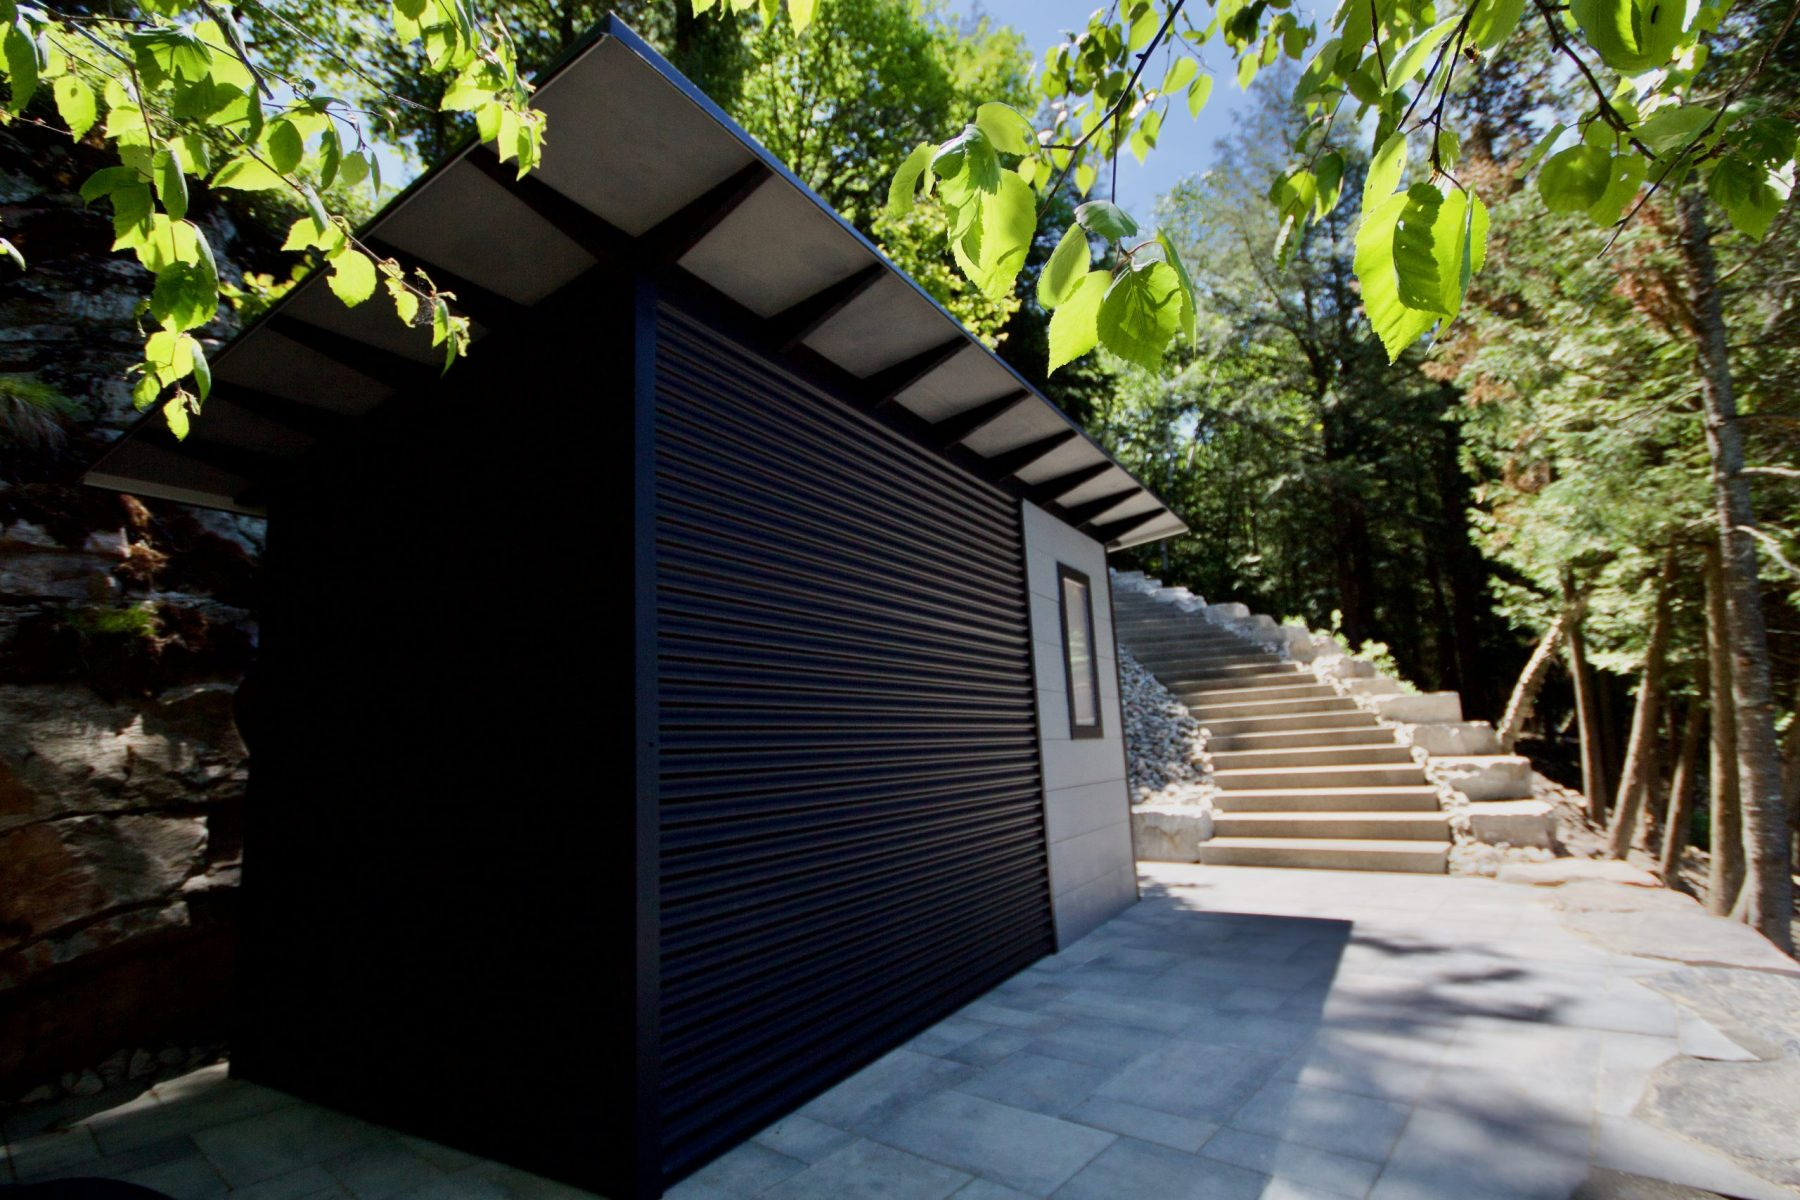 14' x 7' Custom Storage Shed with Kendall Charcoal Stain and Jet Black Steel